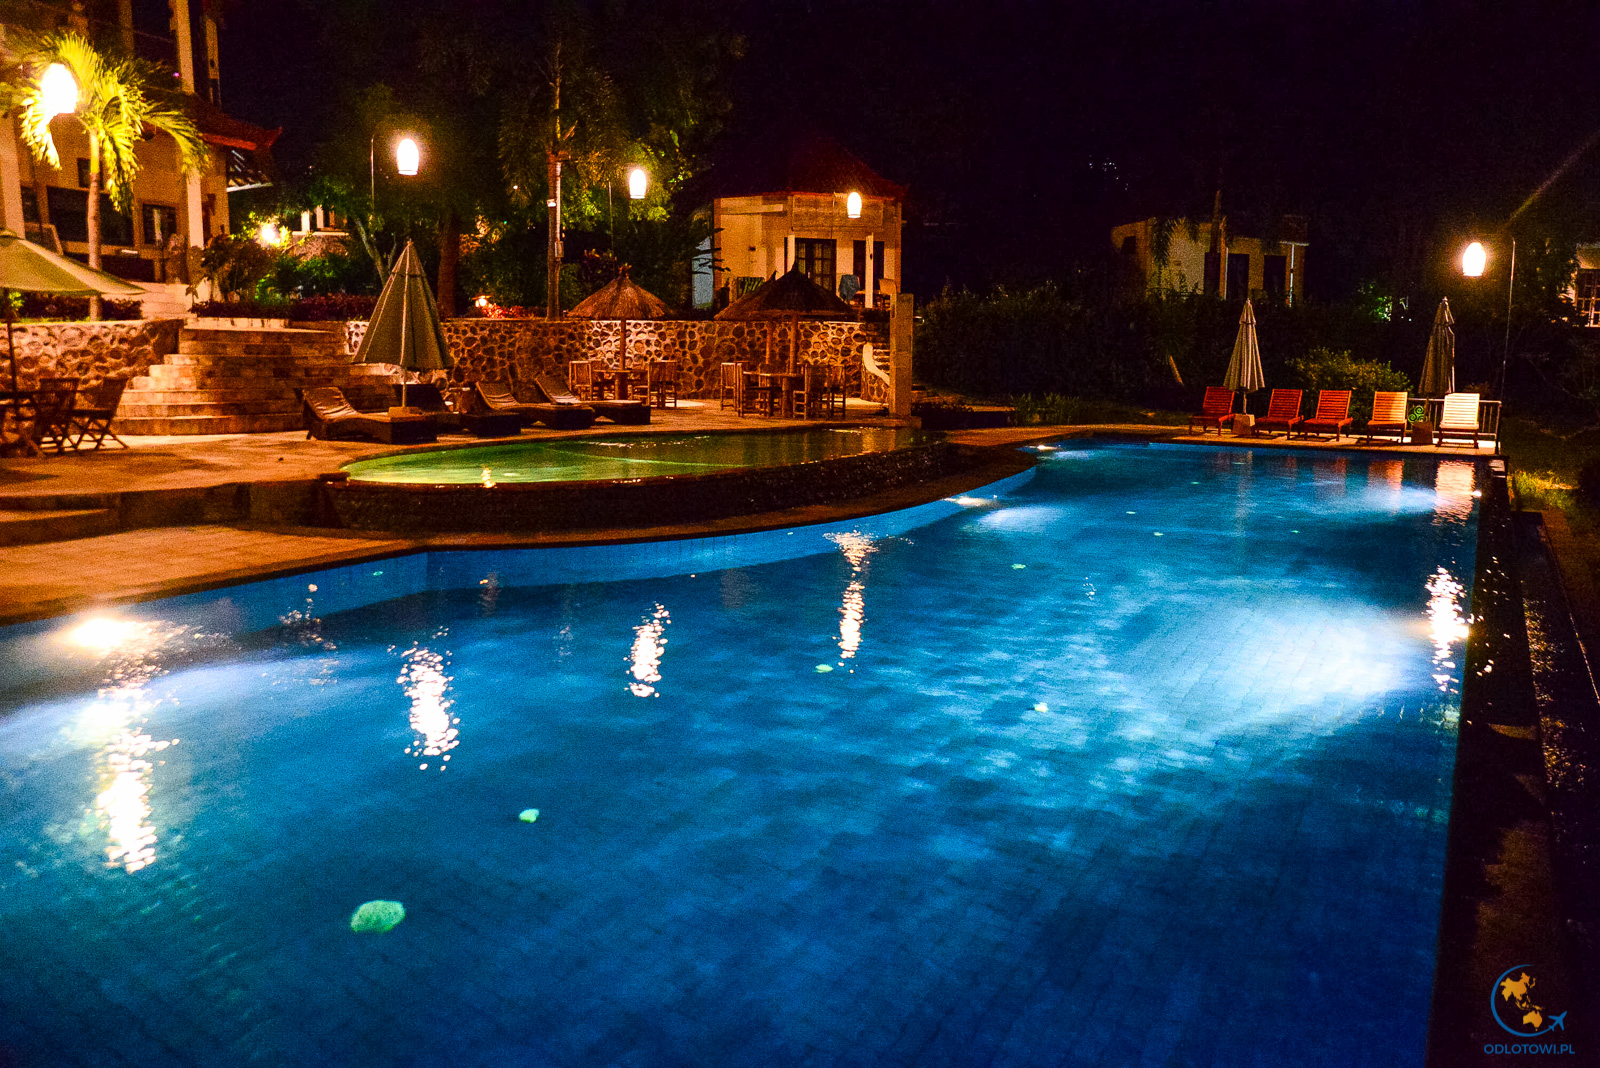 Hamsa Infinity pool by night - Bali